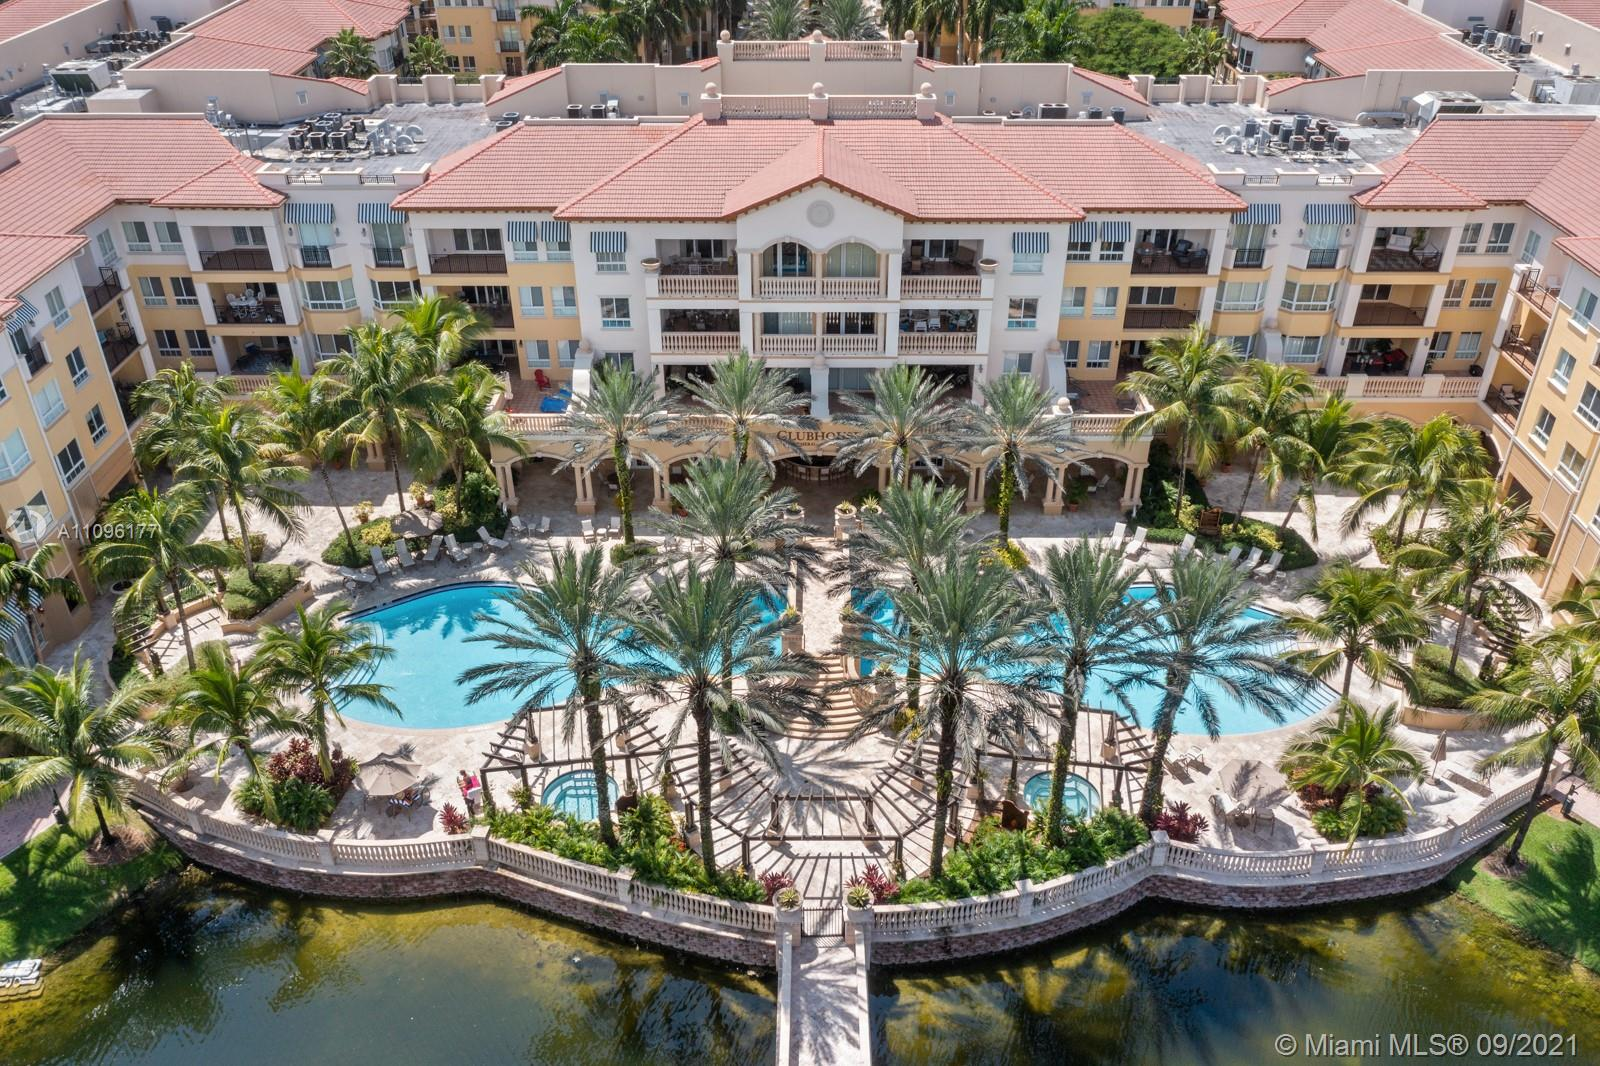 1 BED & 1 BATH APARTMENT IN THE GORGEOUS COMPLEX OF THE PALMS AT WESTON, 55+ COMMUNITY UNIT IS LOCATED AT THE CLUB HOUSE WHERE ALL AMENITIES ARE LOCATED! HEATED POOL, GYM, GAME ROOM, LIBRARY.